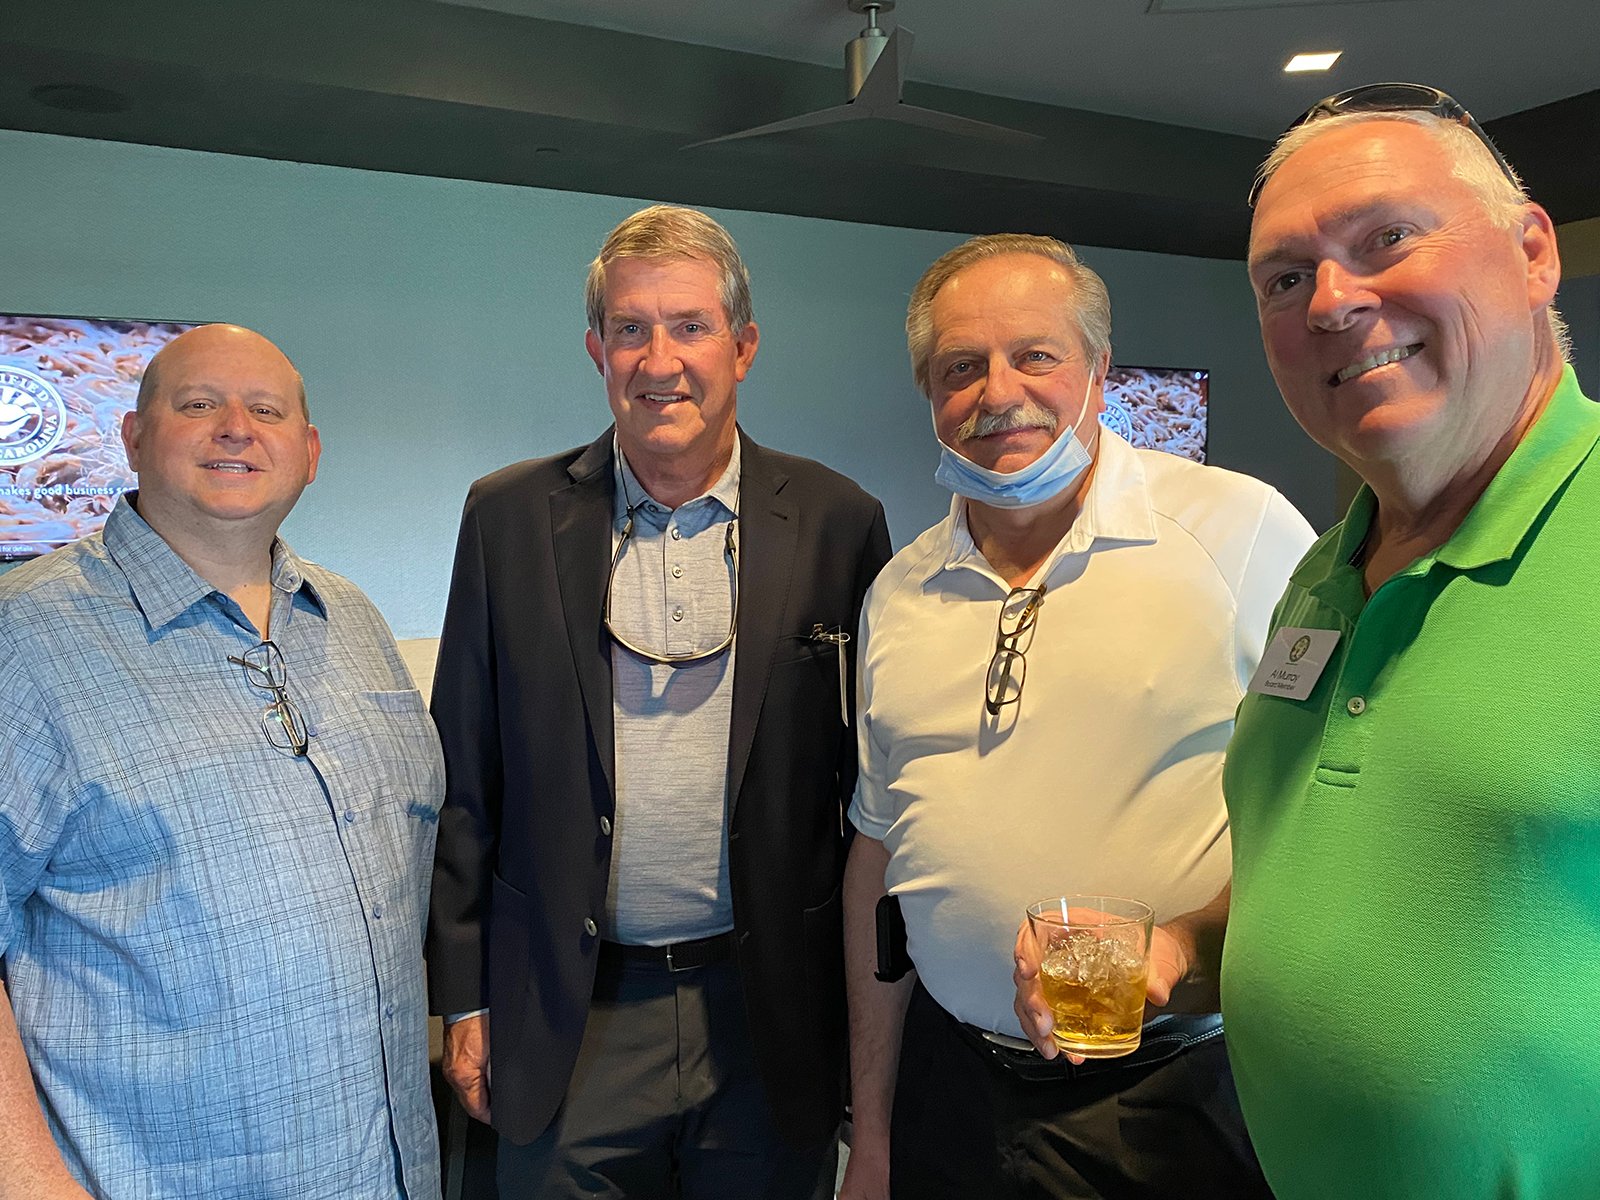 Joe Atchison of the New Jersey Department of Agriculture, Hugh Weathers of the South Carolina Department of Agriculture, Kurt Zuhlke of Kurt Zuhlke Associates and Al Murray of the New Jersey Agricultural Society.